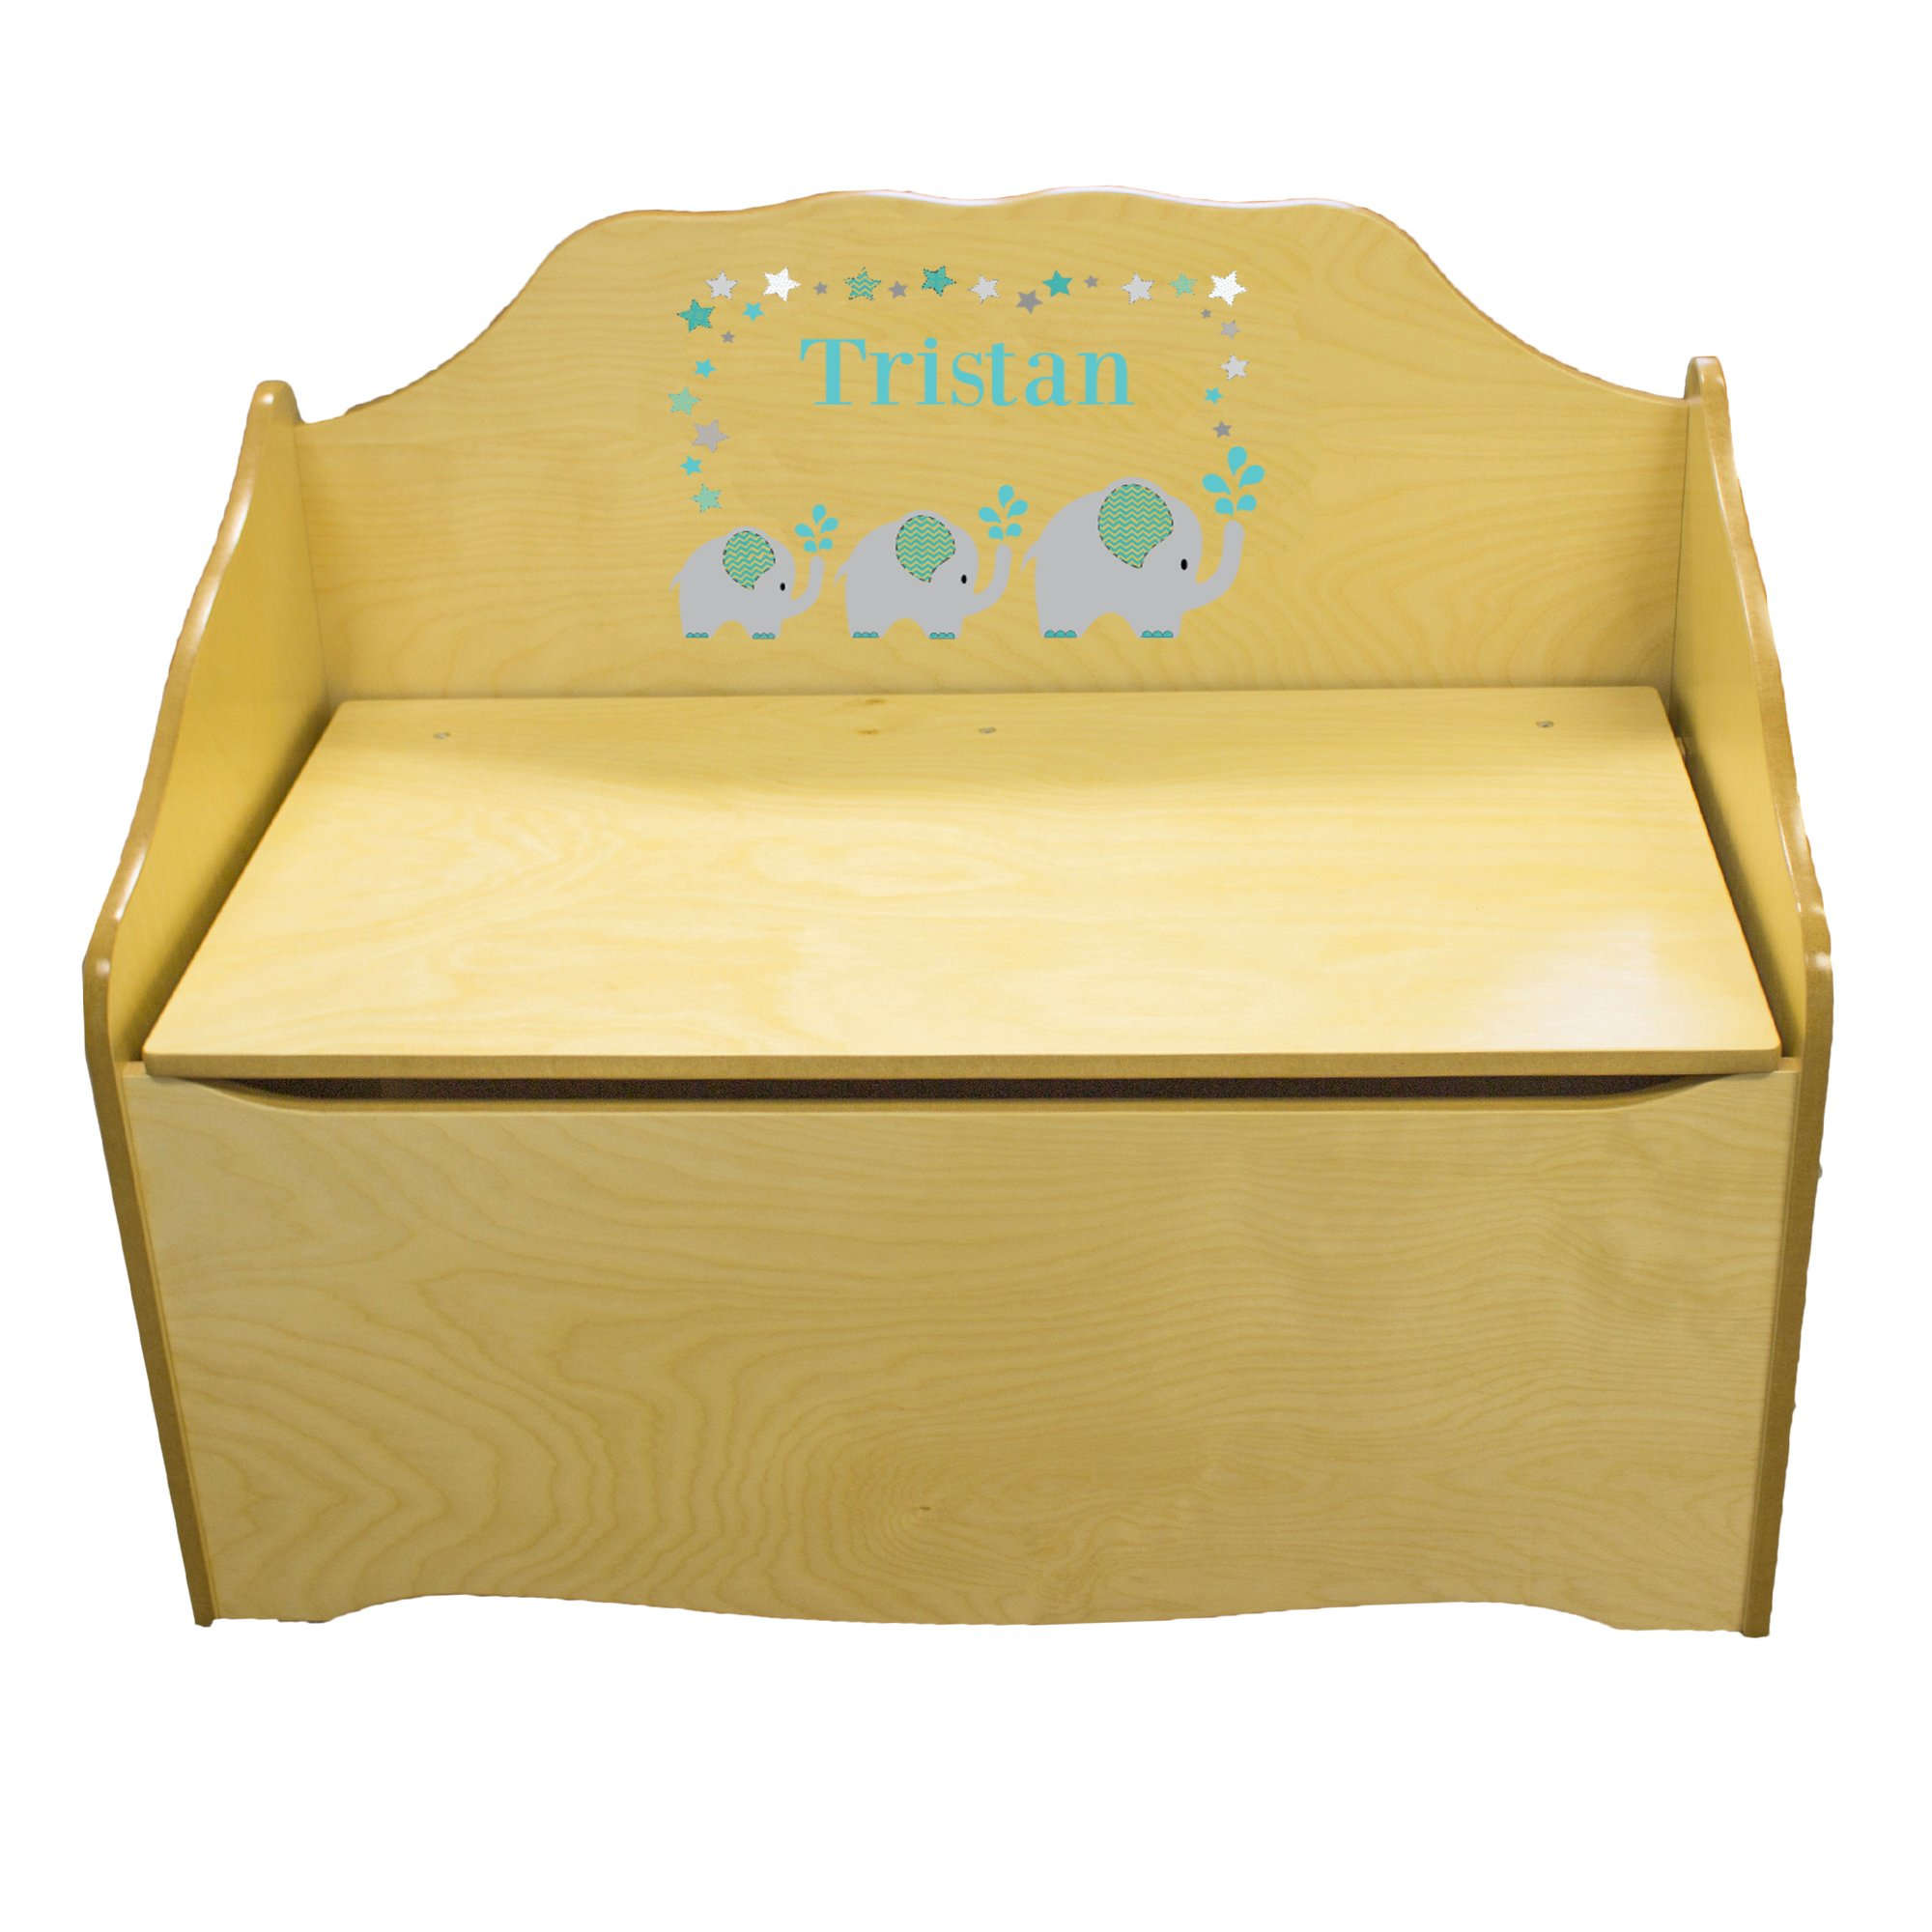 Personalized Grey and Teal Elephant Childrens Natural Wooden Toy Chest